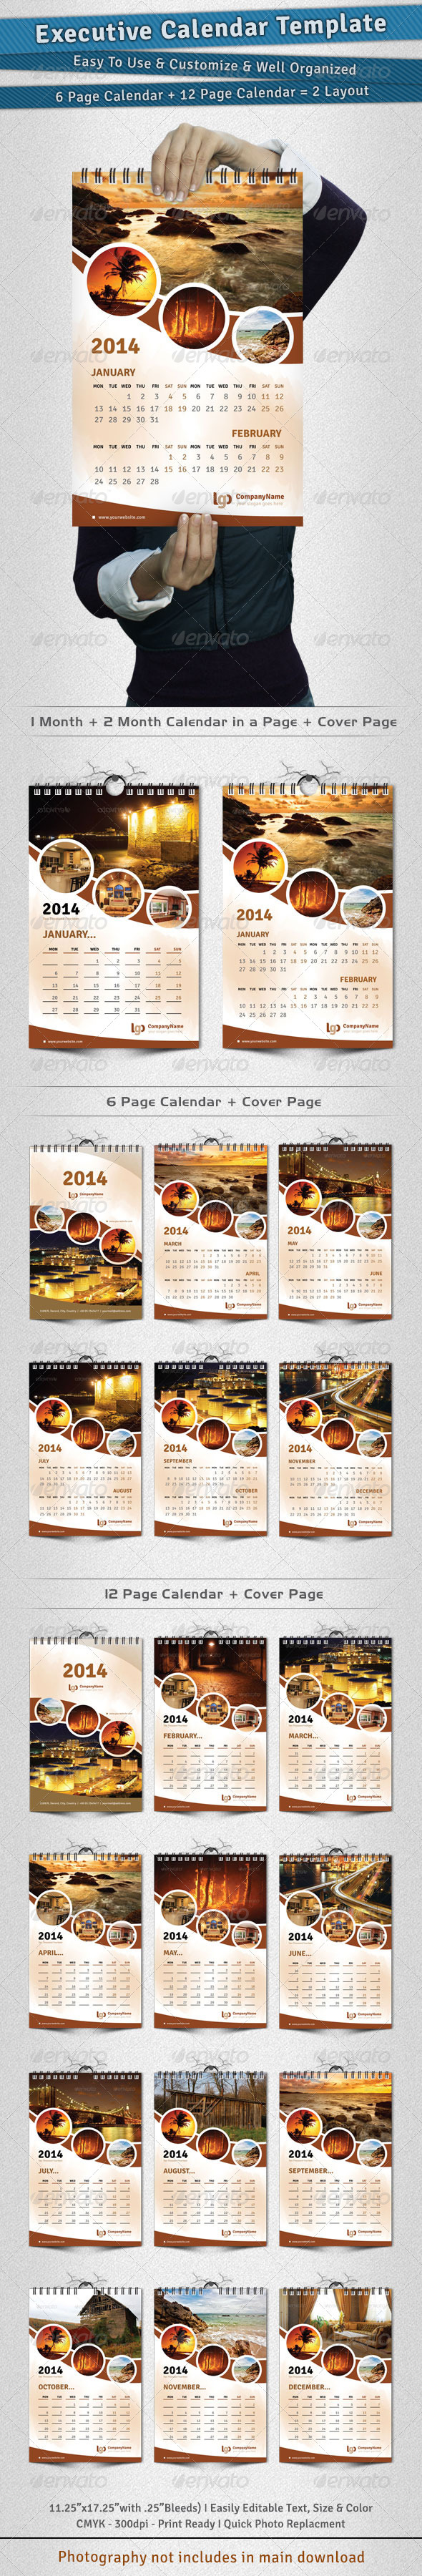 Executive Calendar Template 2014 - Calendars Stationery